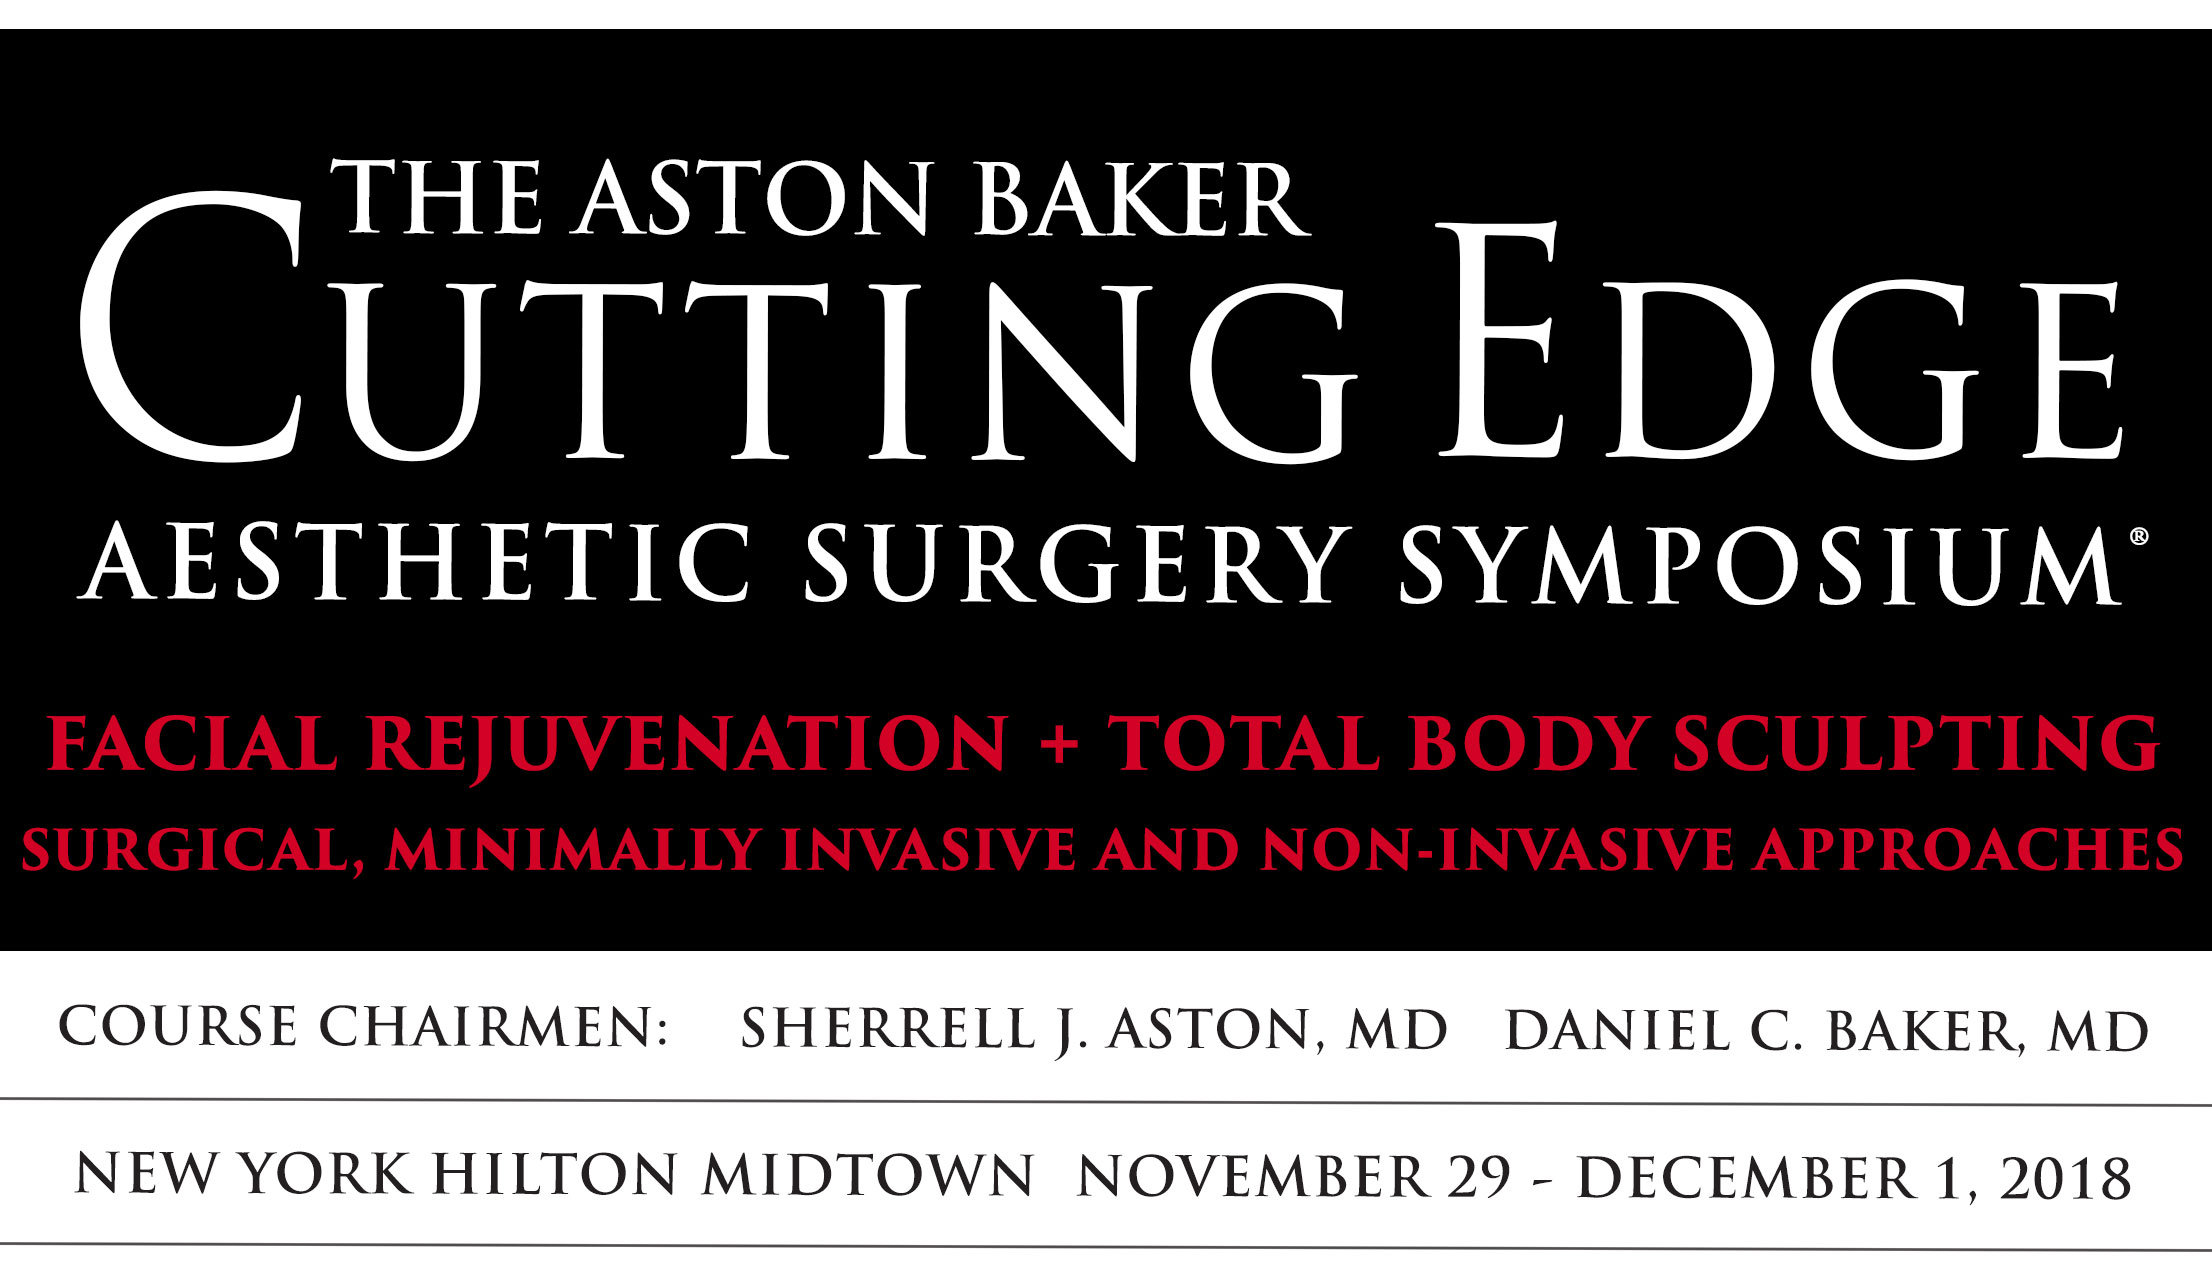 The Aston Baker Cutting Edge Aesthetic Surgery Symposium 2018